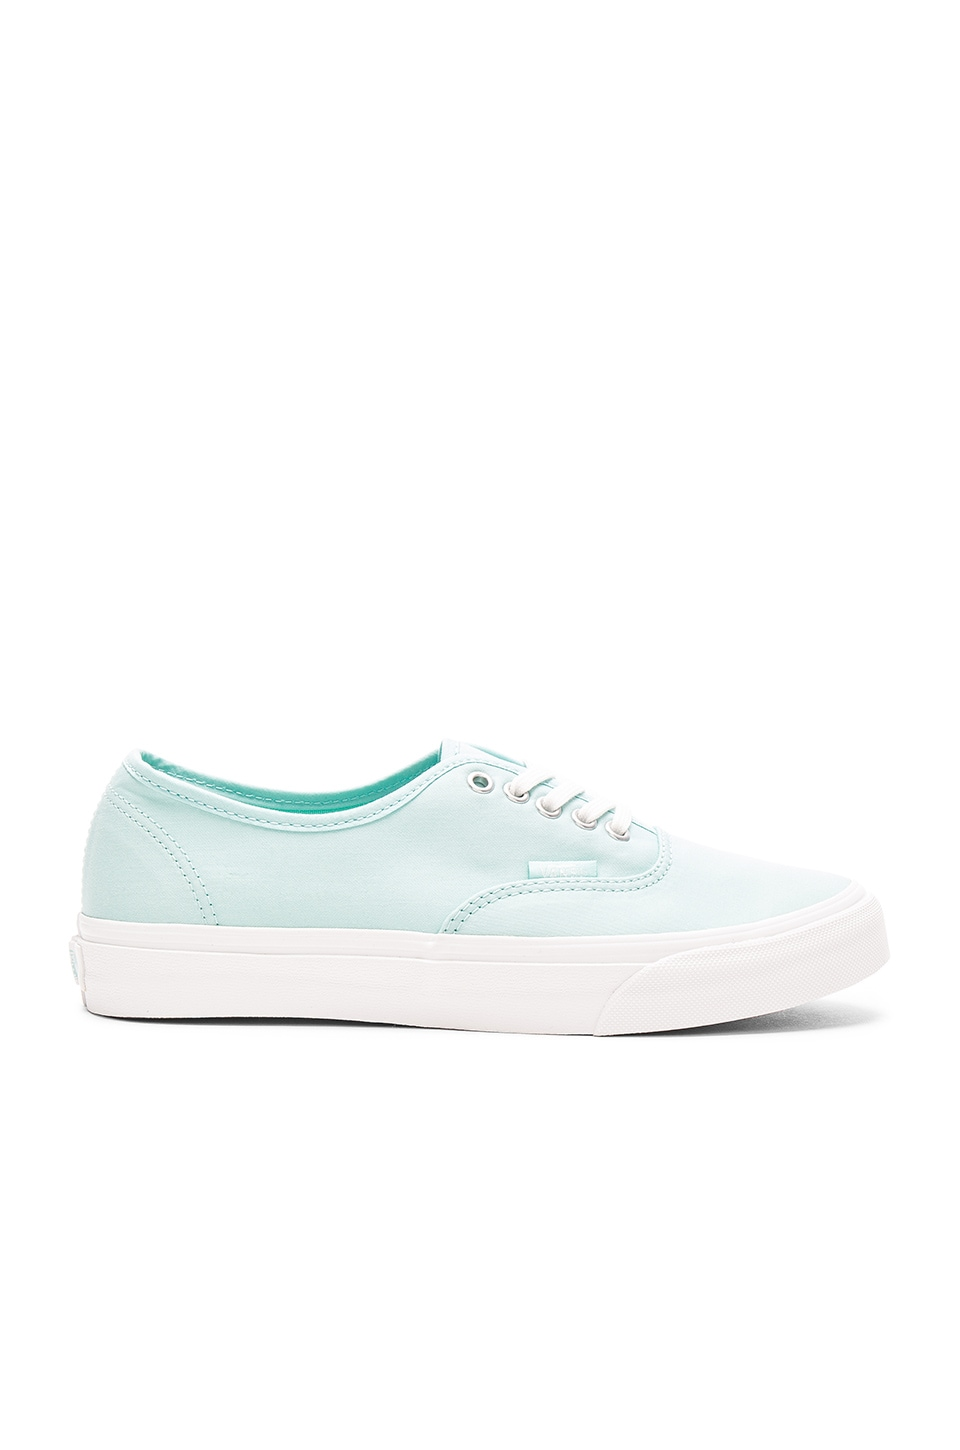 Vans Brushed Twill Authentic Slim Sneaker in Blue Light & Blanc de Blanc